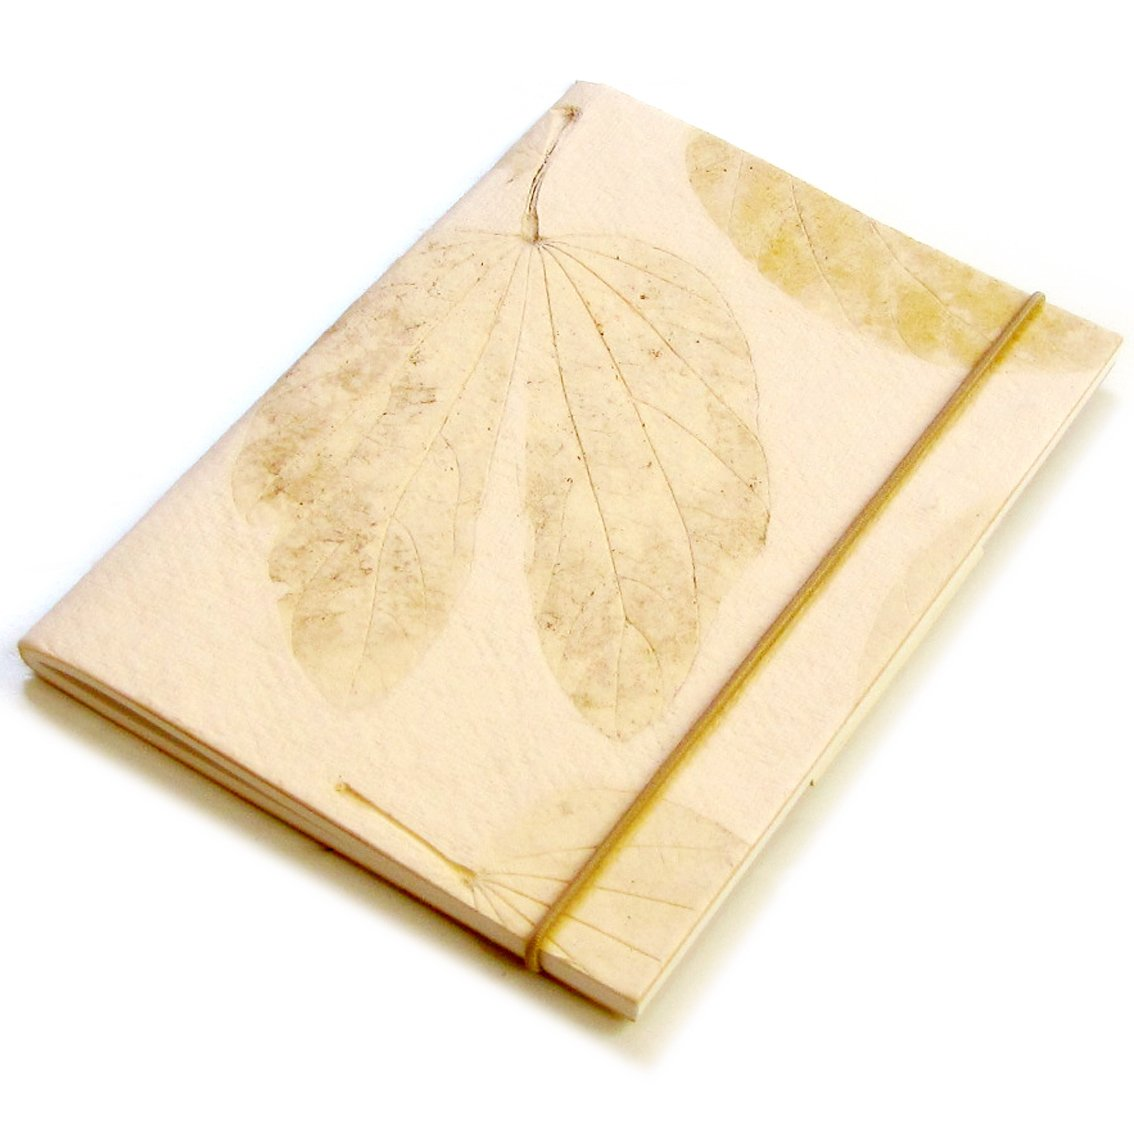 Blank handmade diaries notes recipes 5x7 40pp cream heart leaf handmade paper notebook Xmas gifts